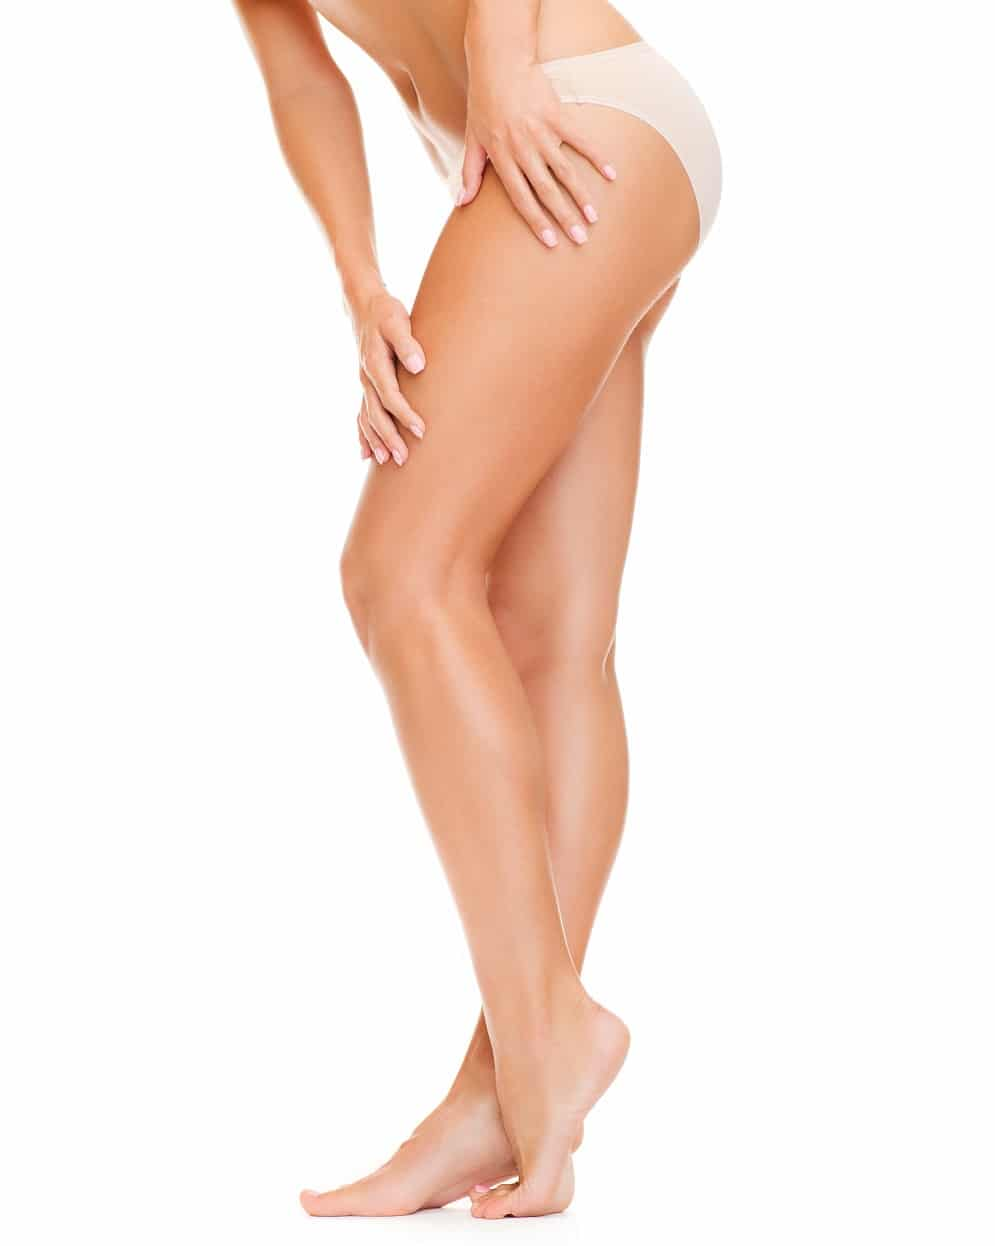 A woman with long legs in cotton underwear